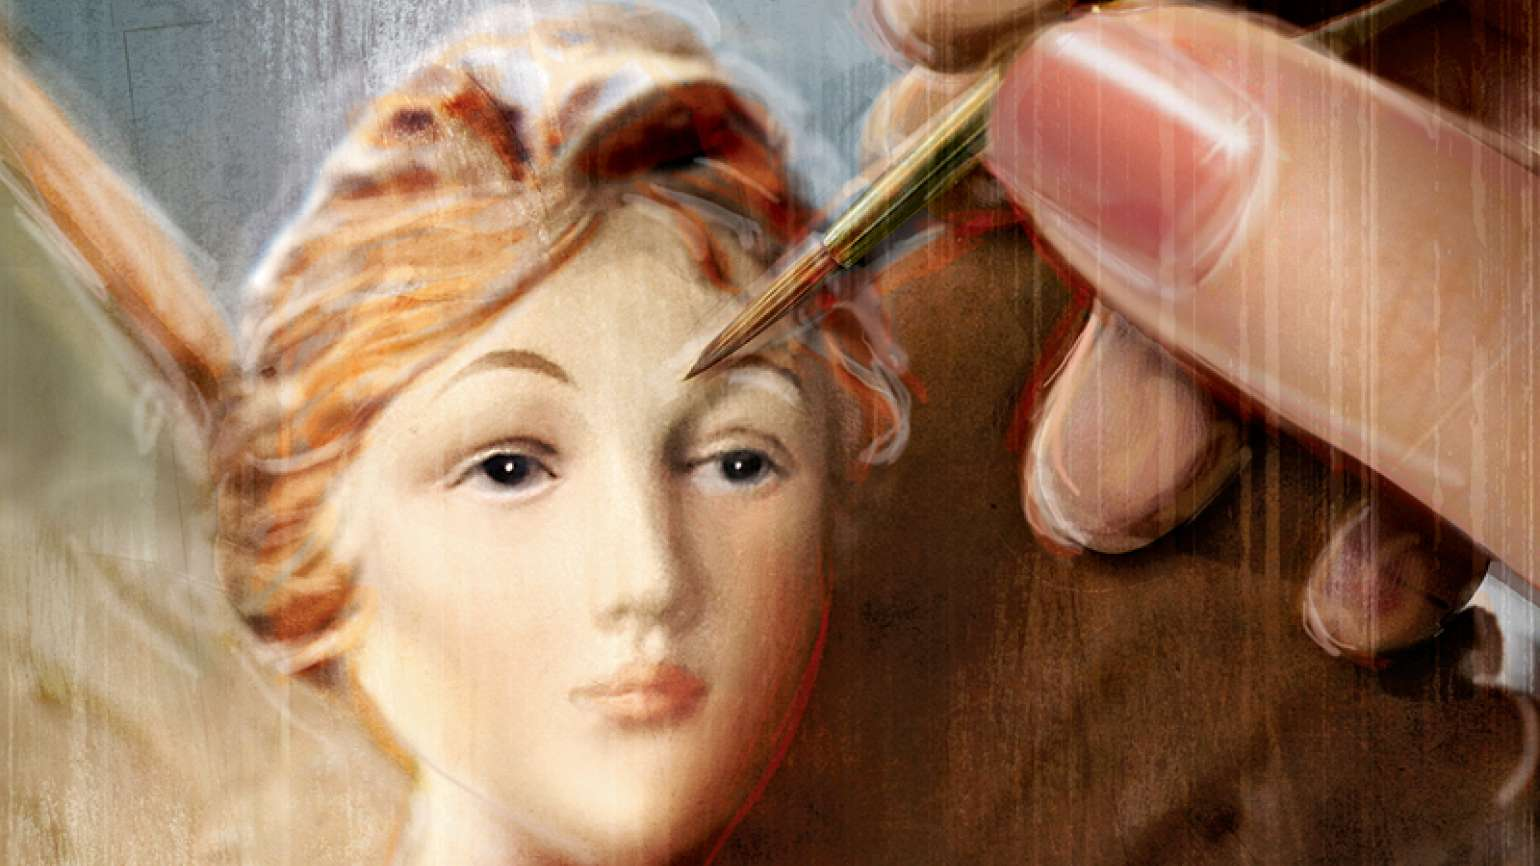 An artist's rendering of a hand painting an angel statue's face